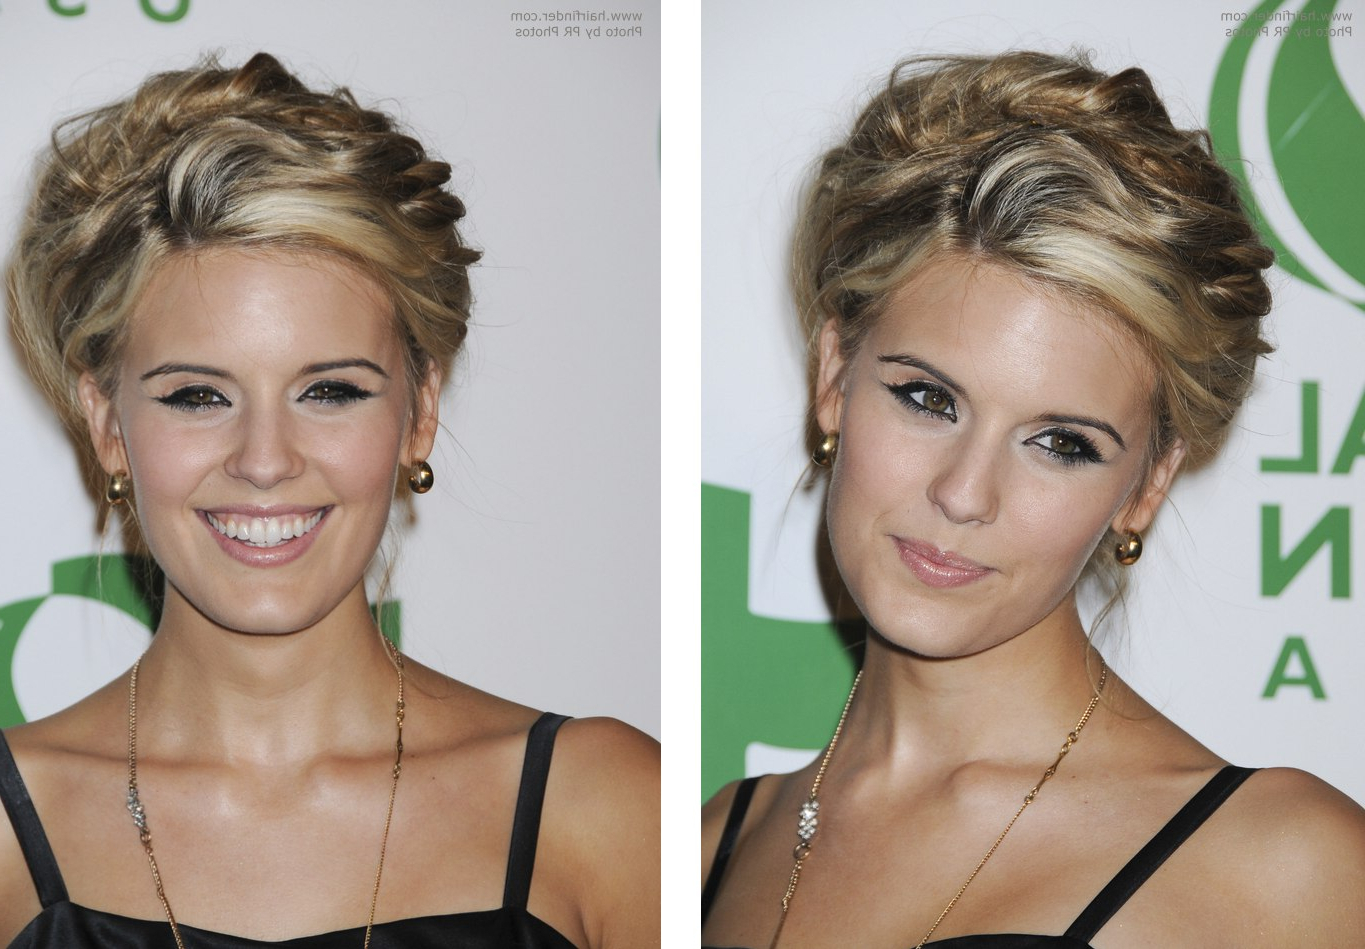 Maggie Grace's Hair Worn Up And Sarah Roemer's Hair In Long Layers Regarding Most Current Medium Hairstyles For High Cheekbones (View 11 of 20)